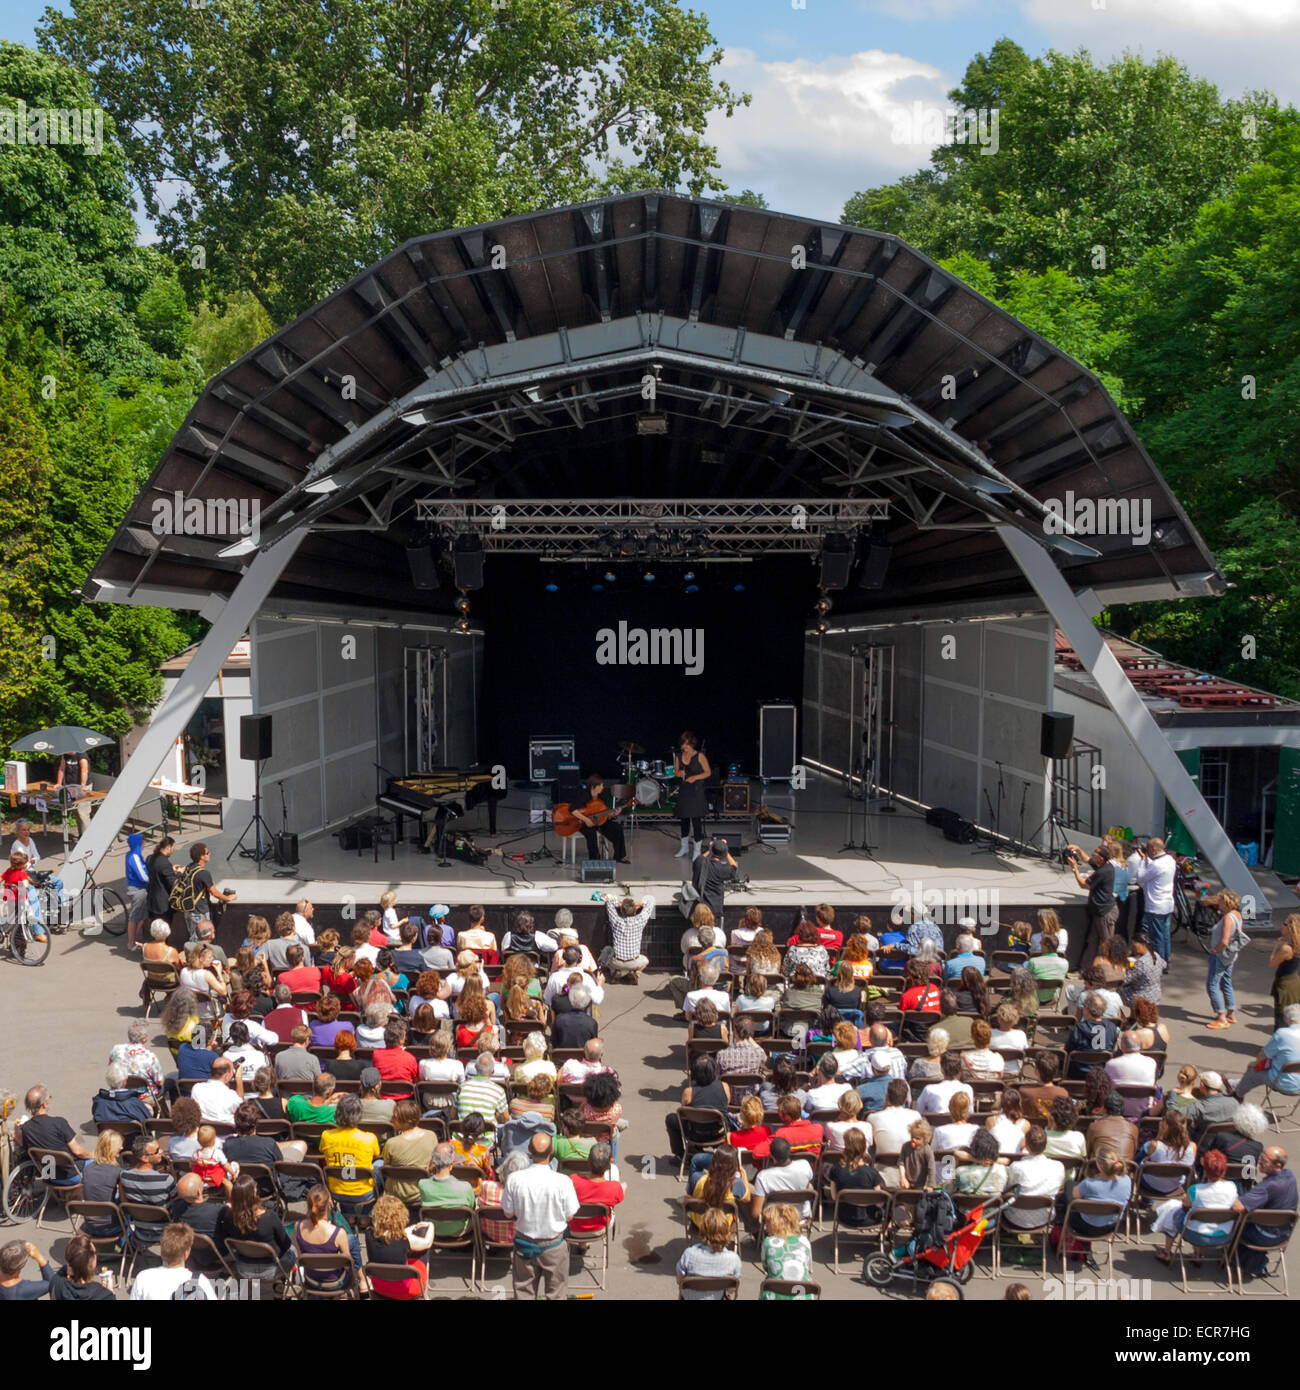 Performance at the openair theater in vondelpark in amsterdam - Stock Image